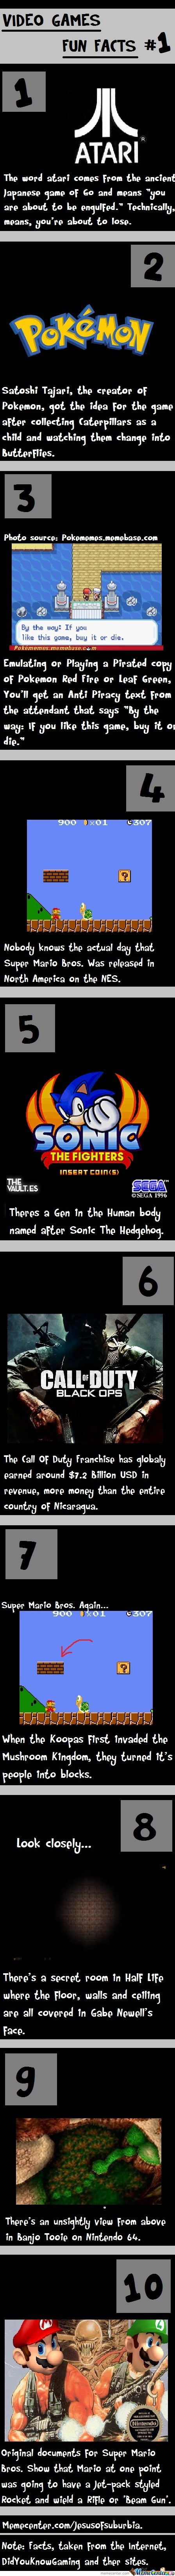 Video Games Fun Facts #1